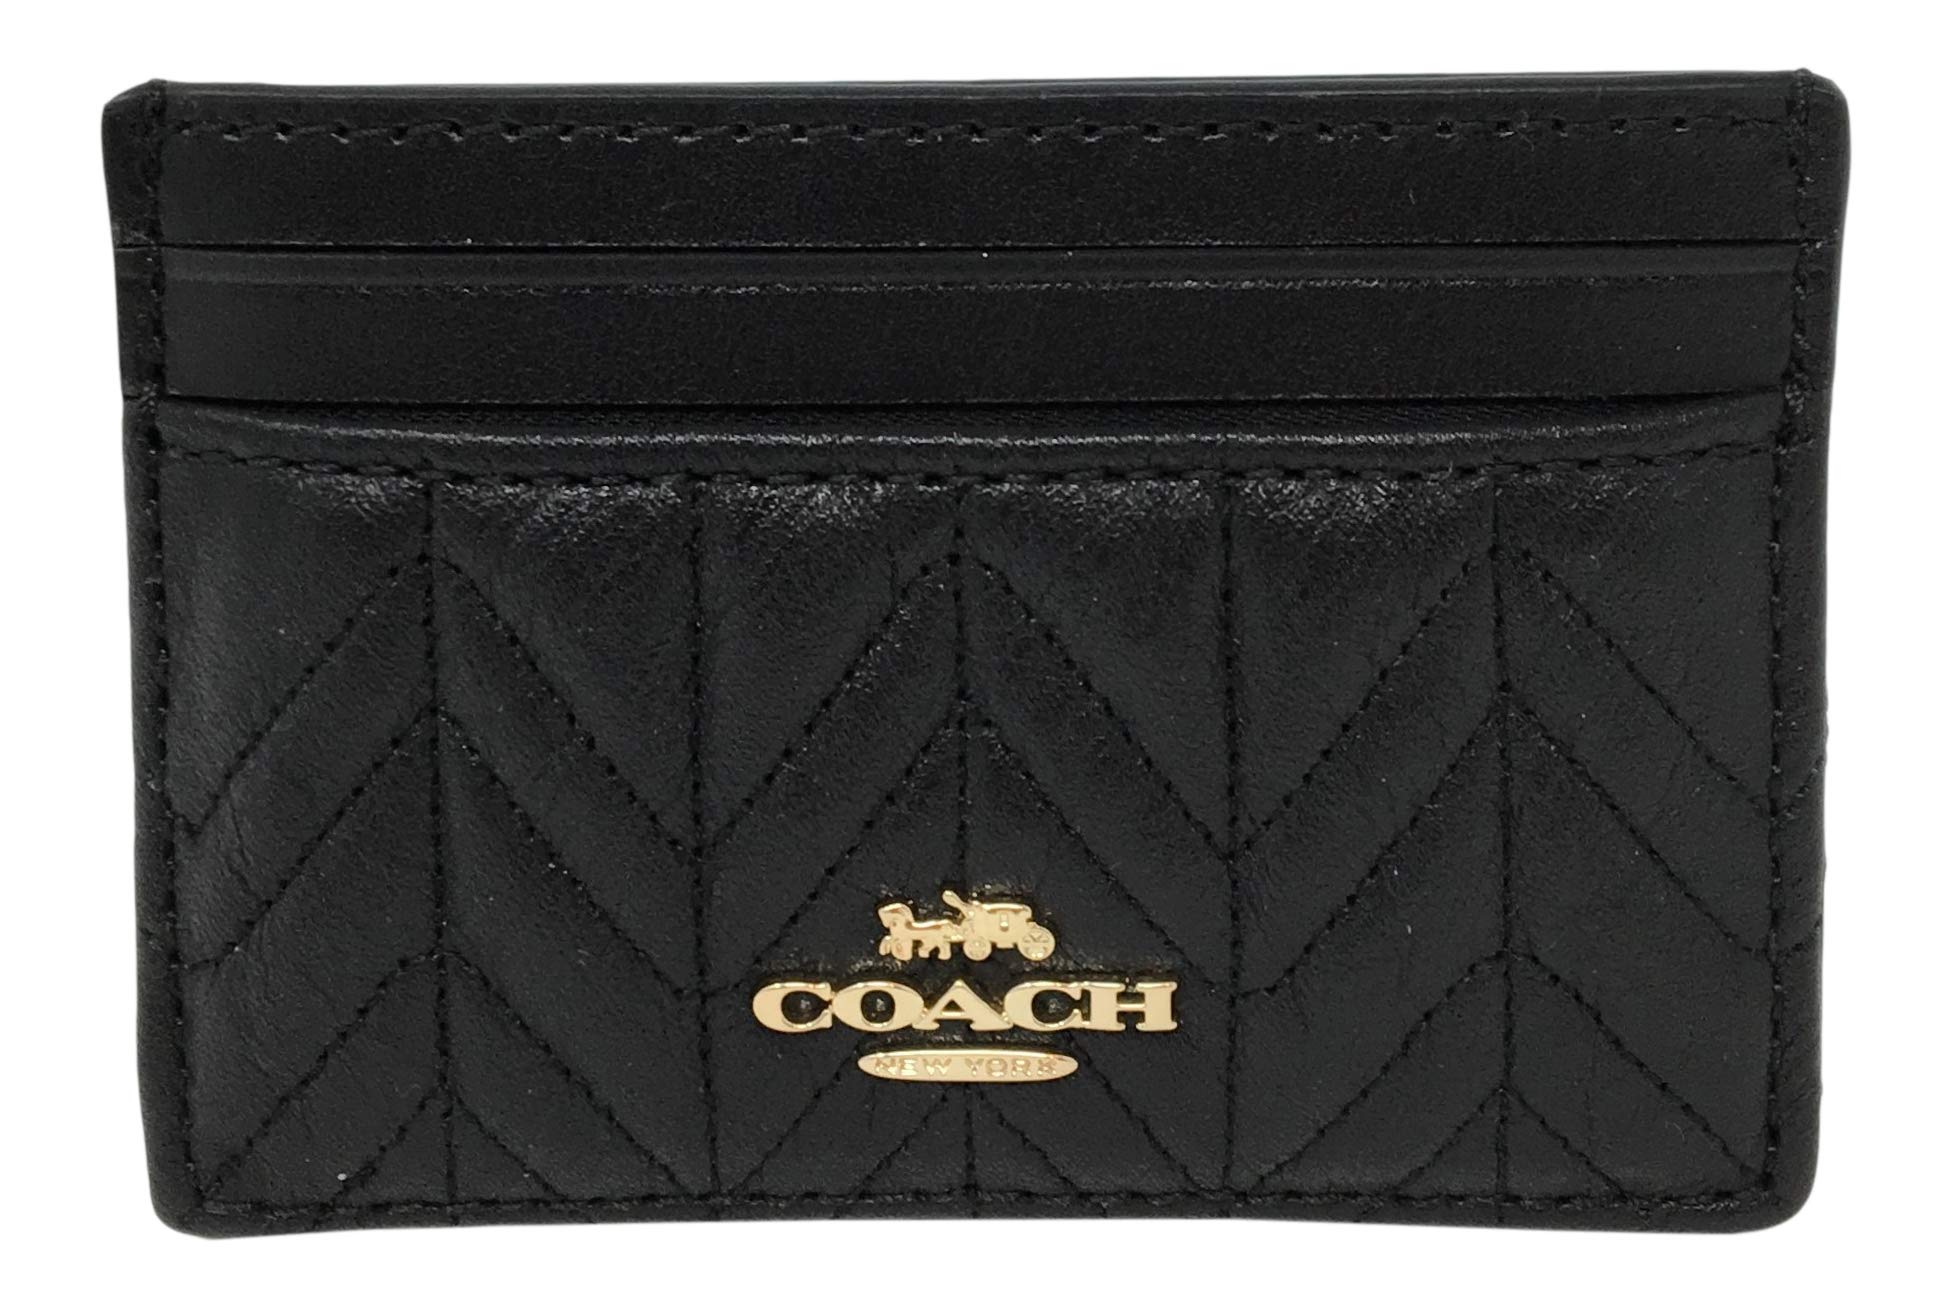 Coach Quilted Card Case in Refined Leather Black F73000 by Coach